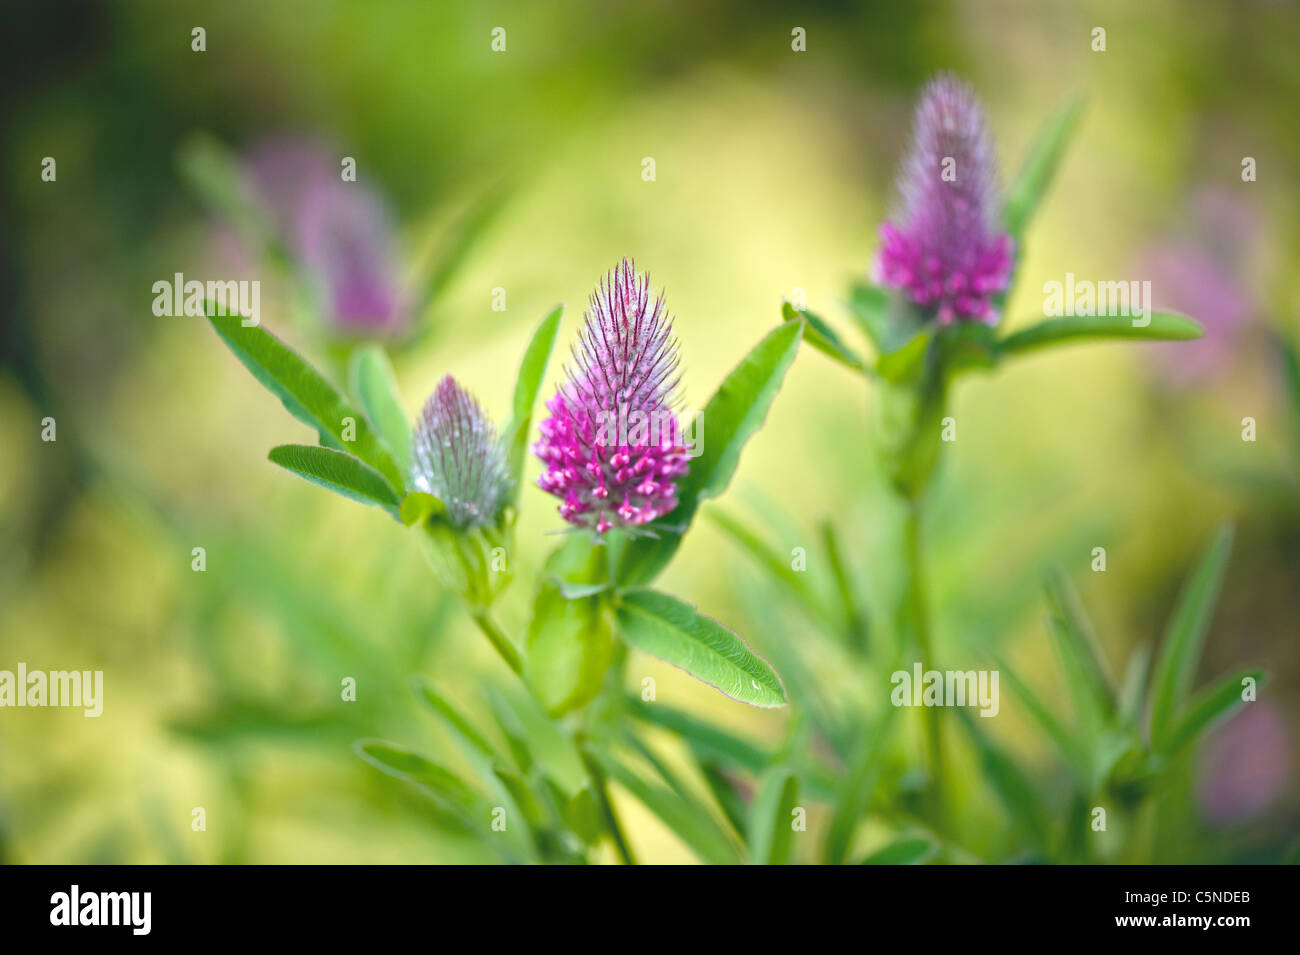 Trifolium rubens 'Red Feathers' flower - Stock Image